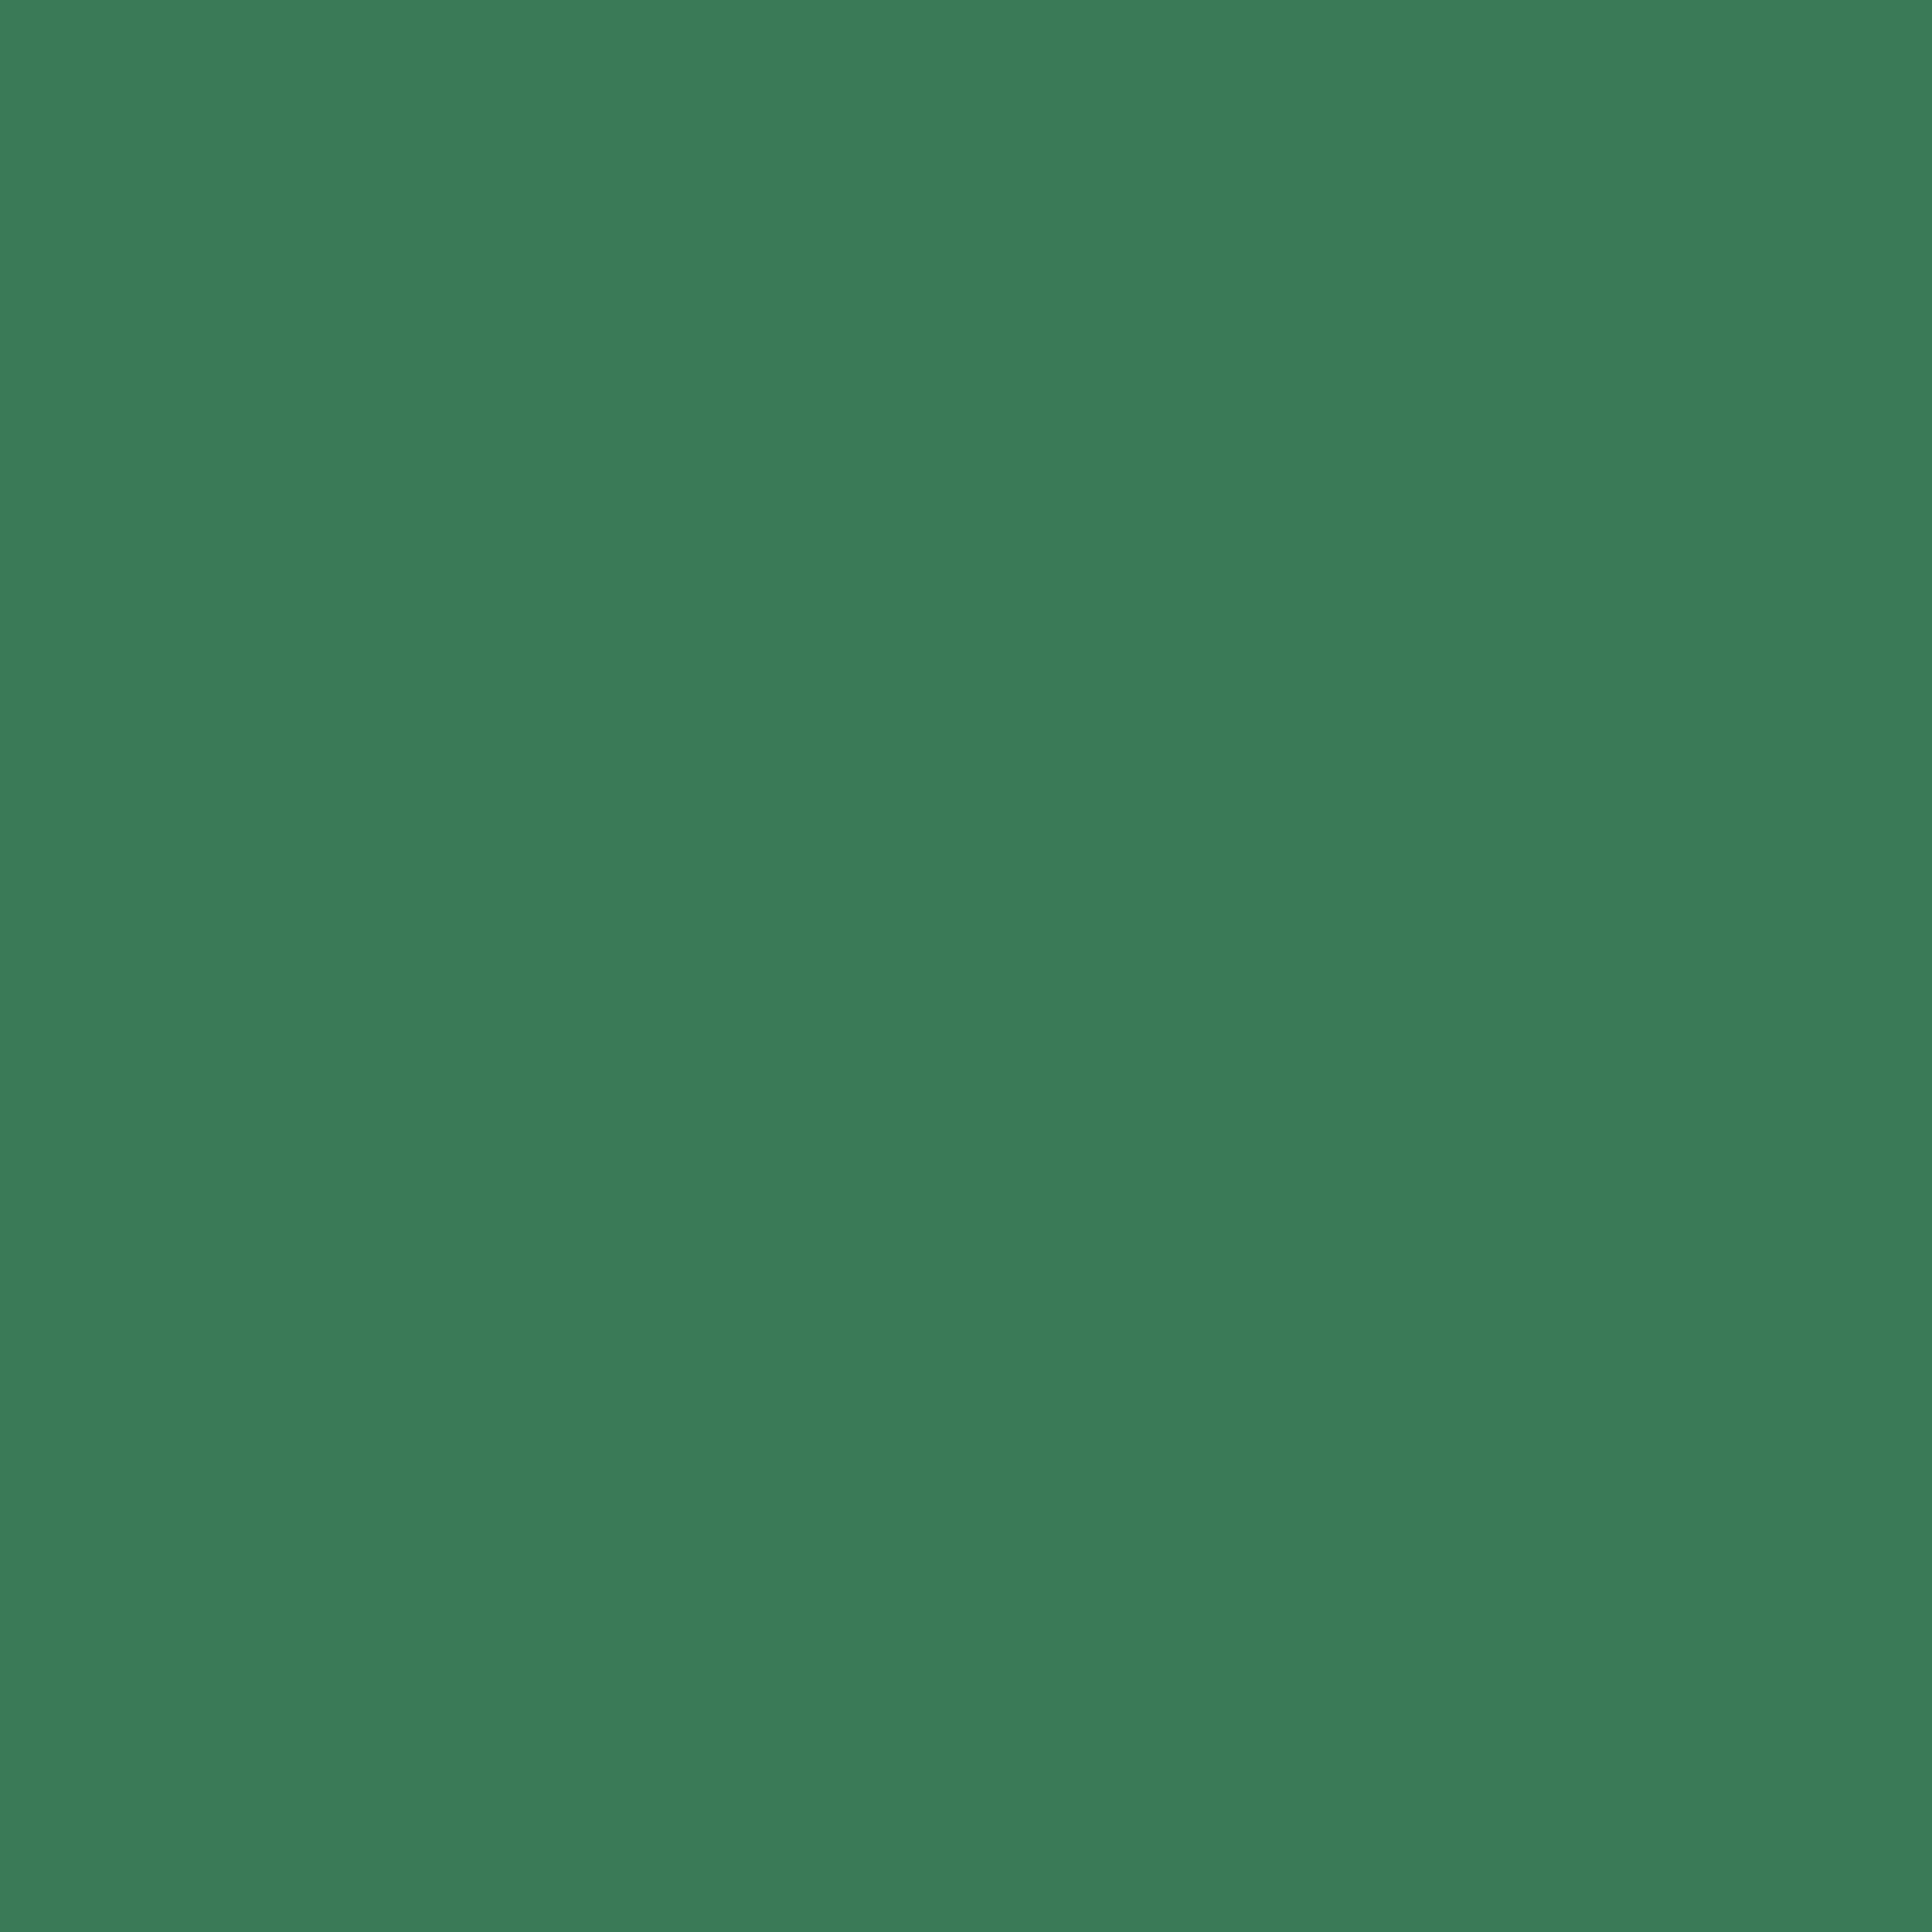 2732x2732 Amazon Solid Color Background